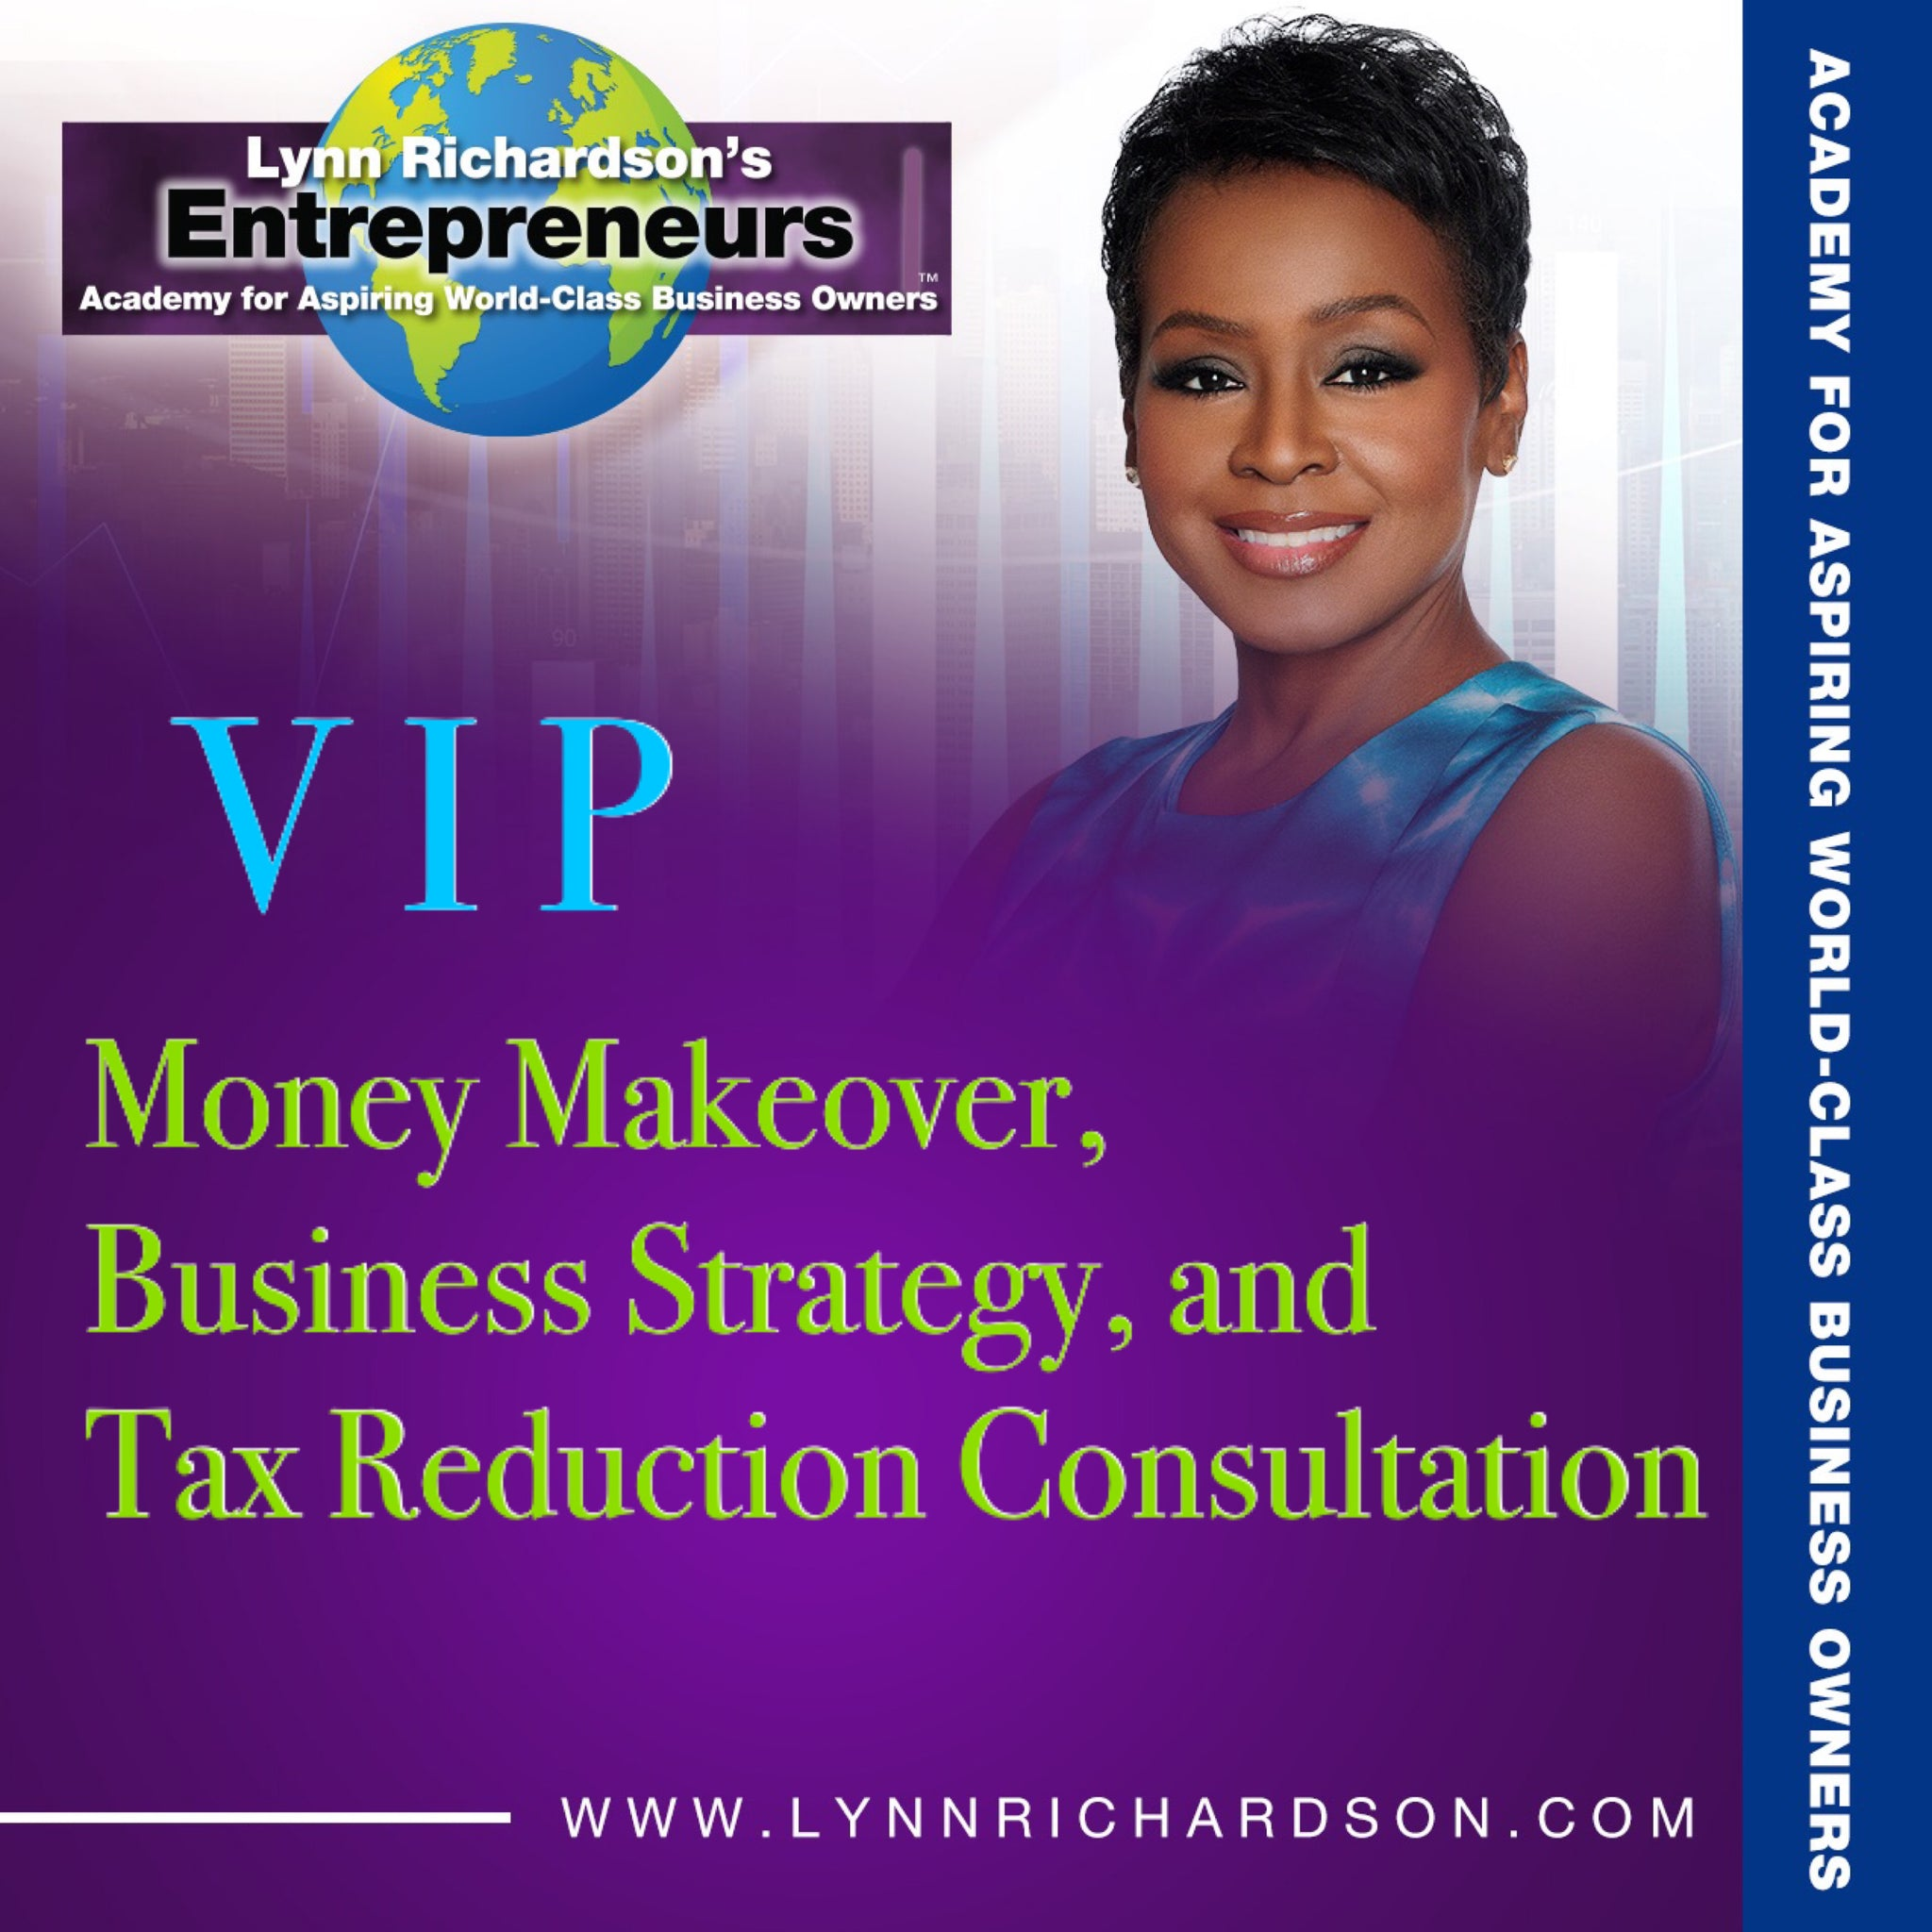 VIP Money Makeover, Business Strategy, and Tax Reduction Plan